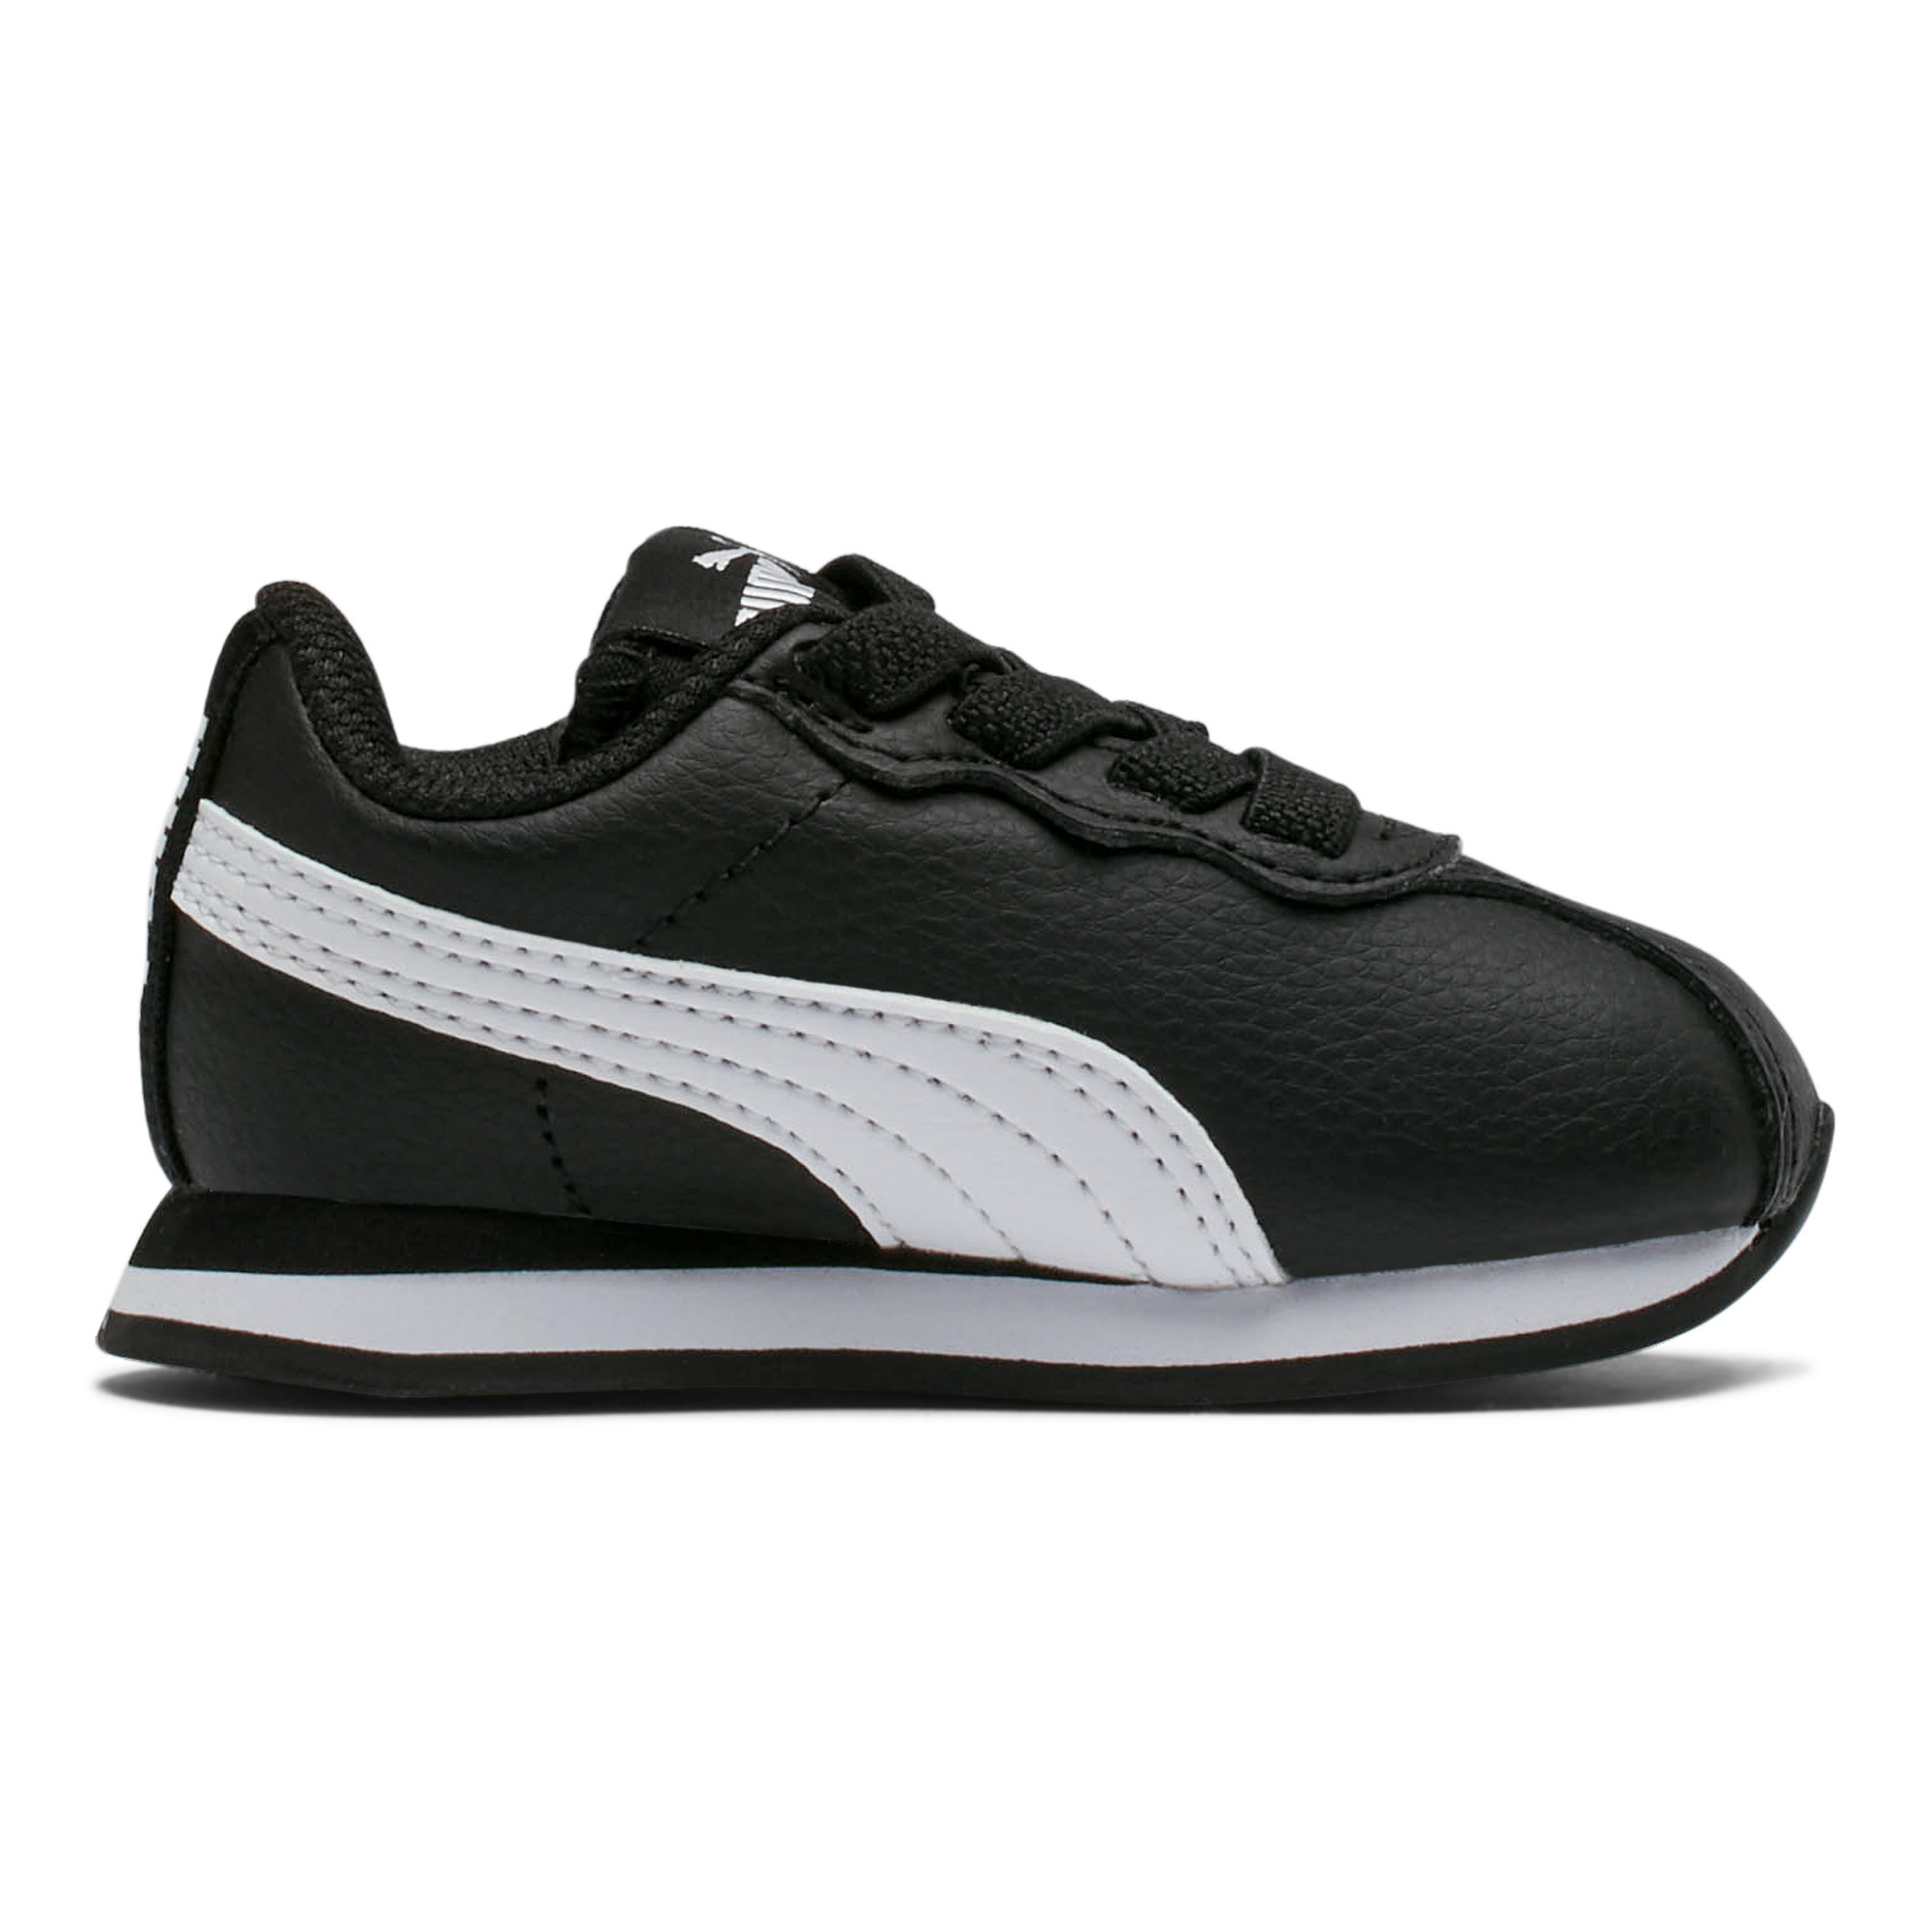 PUMA-Turin-II-AC-Toddler-Shoes-Kids-Shoe-Kids thumbnail 12